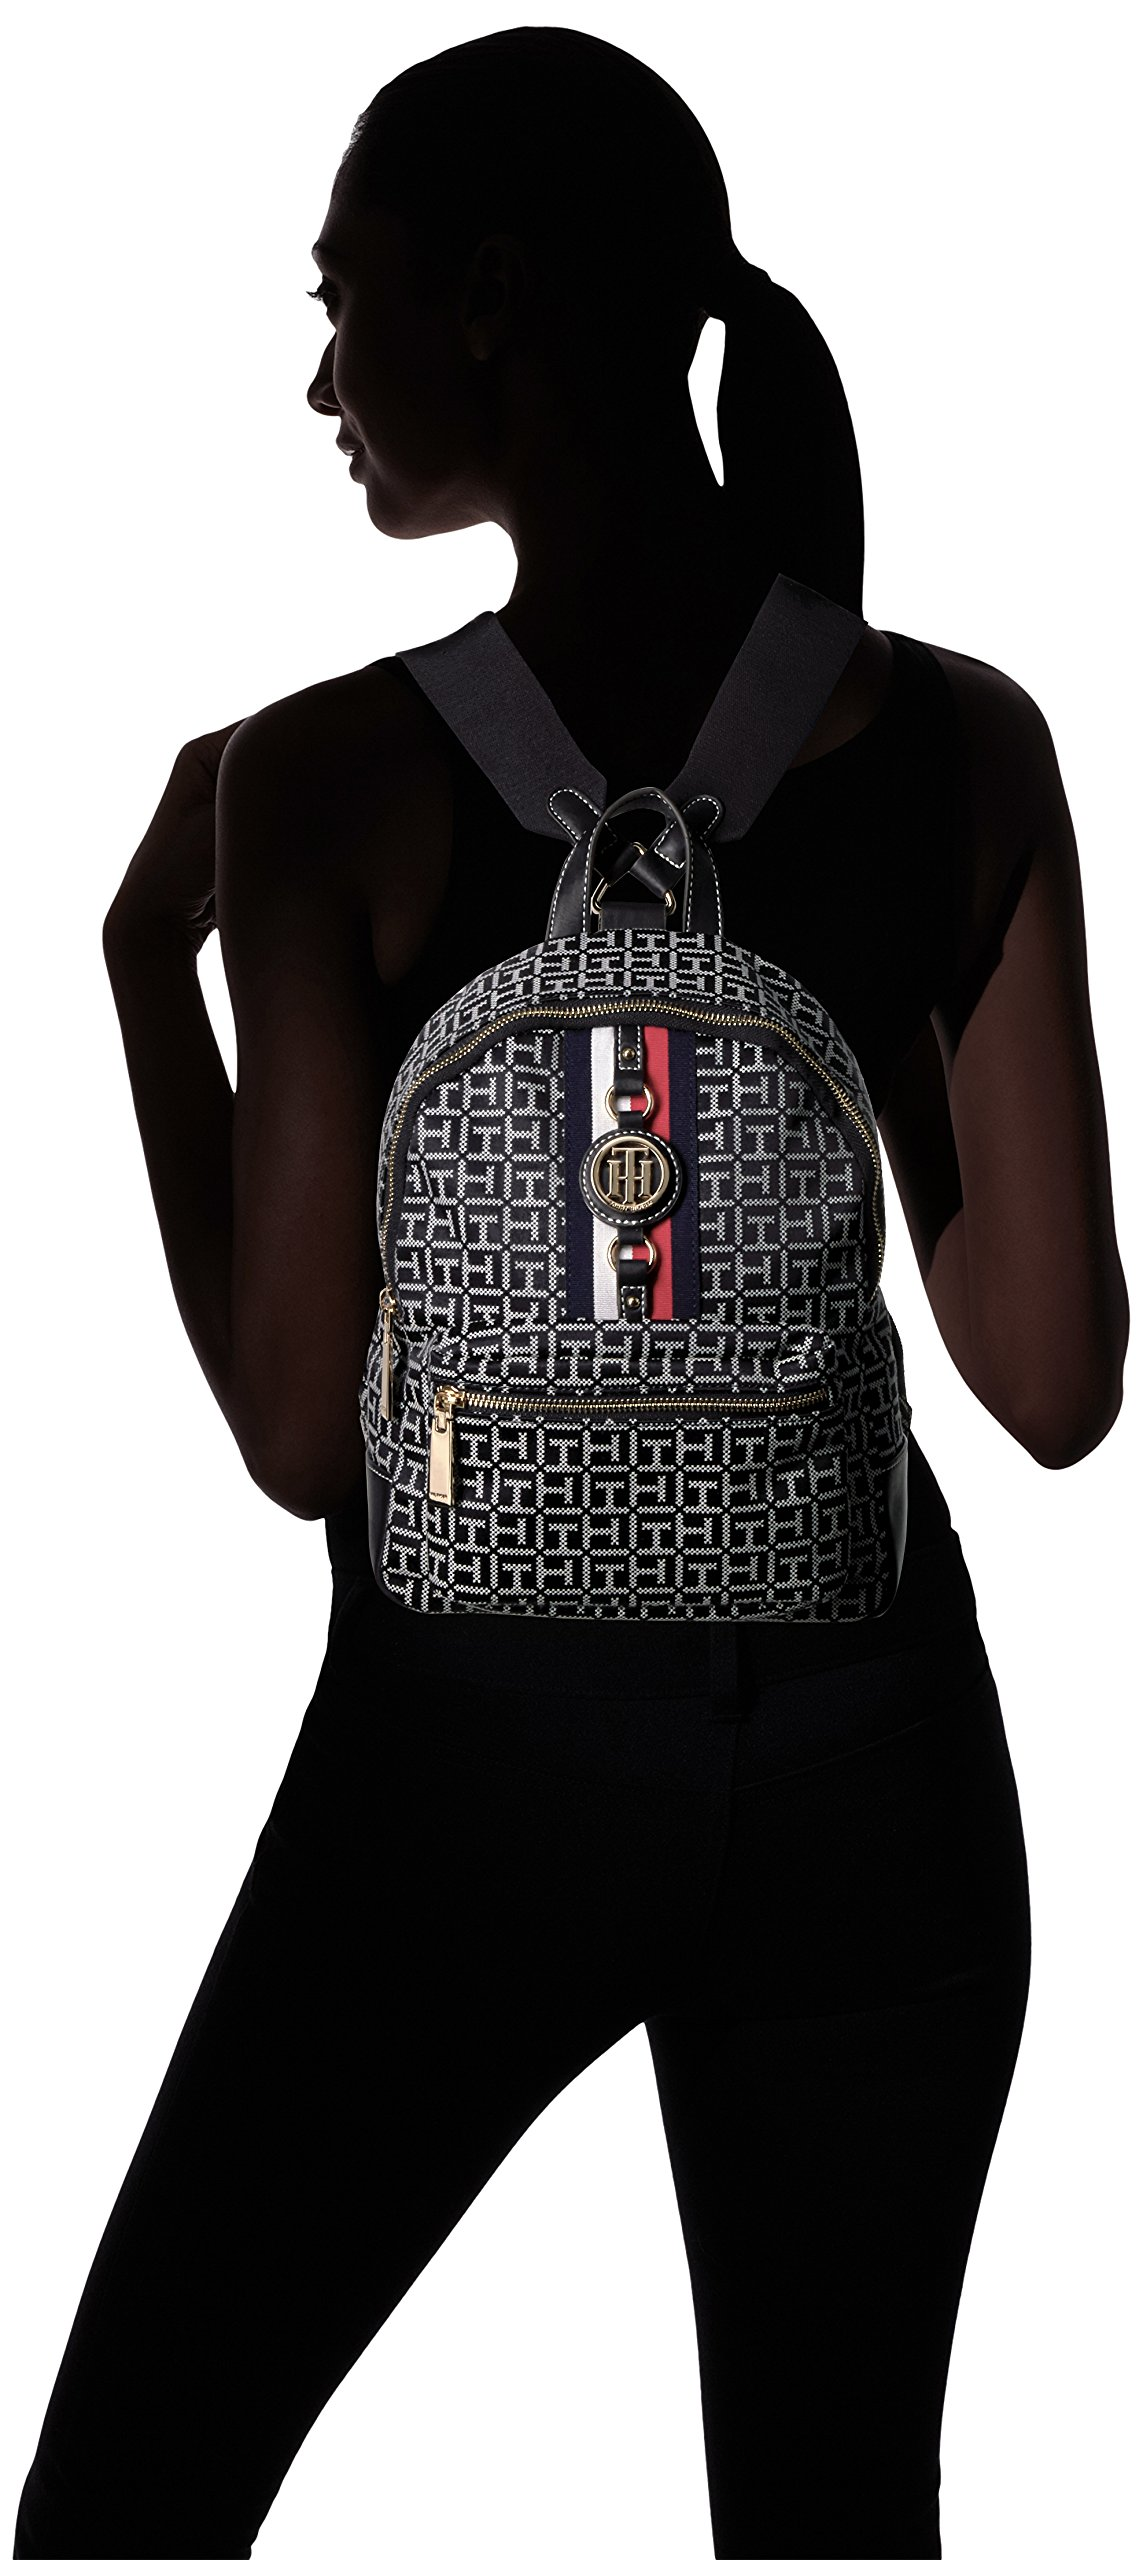 Tommy Hilfiger Women's Backpack Jaden, Black/White by Tommy Hilfiger (Image #4)